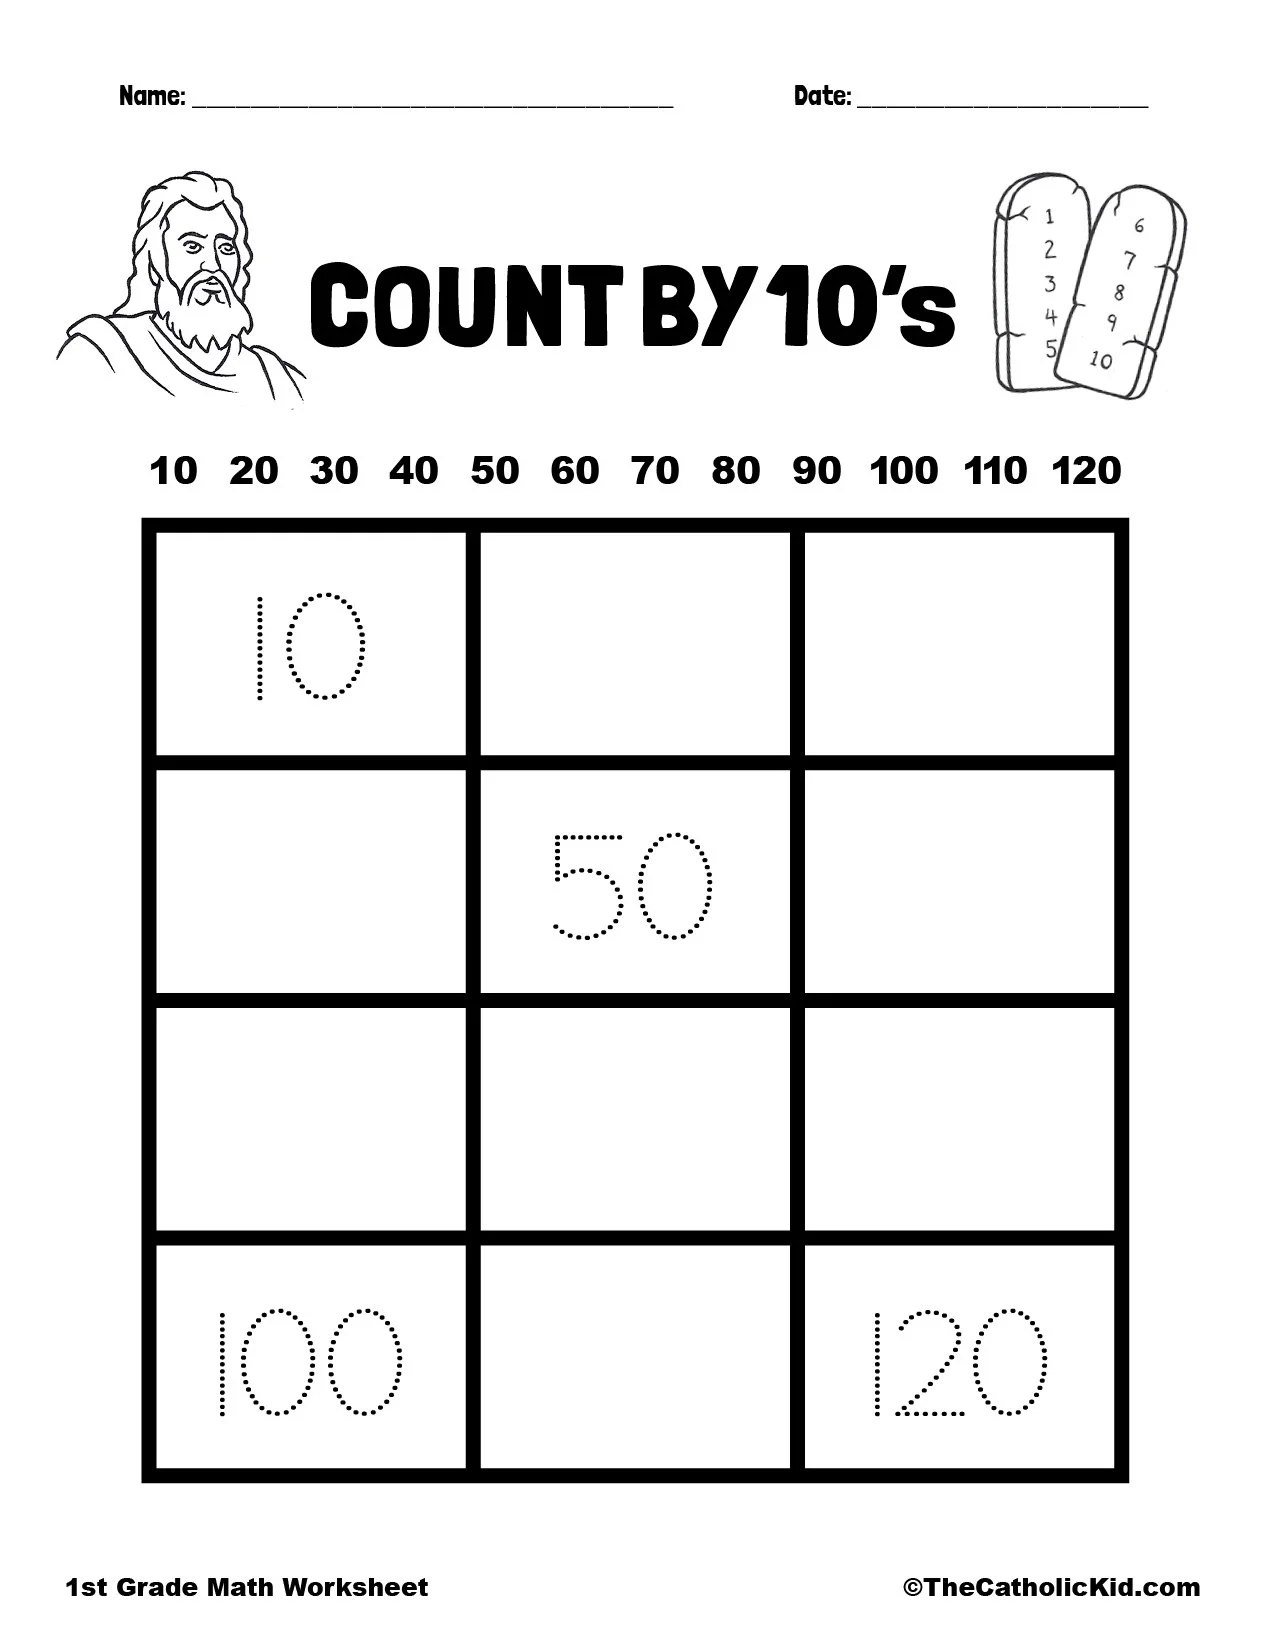 hight resolution of Count By 10's - 1st Grade Math Catholic Worksheet - TheCatholicKid.com